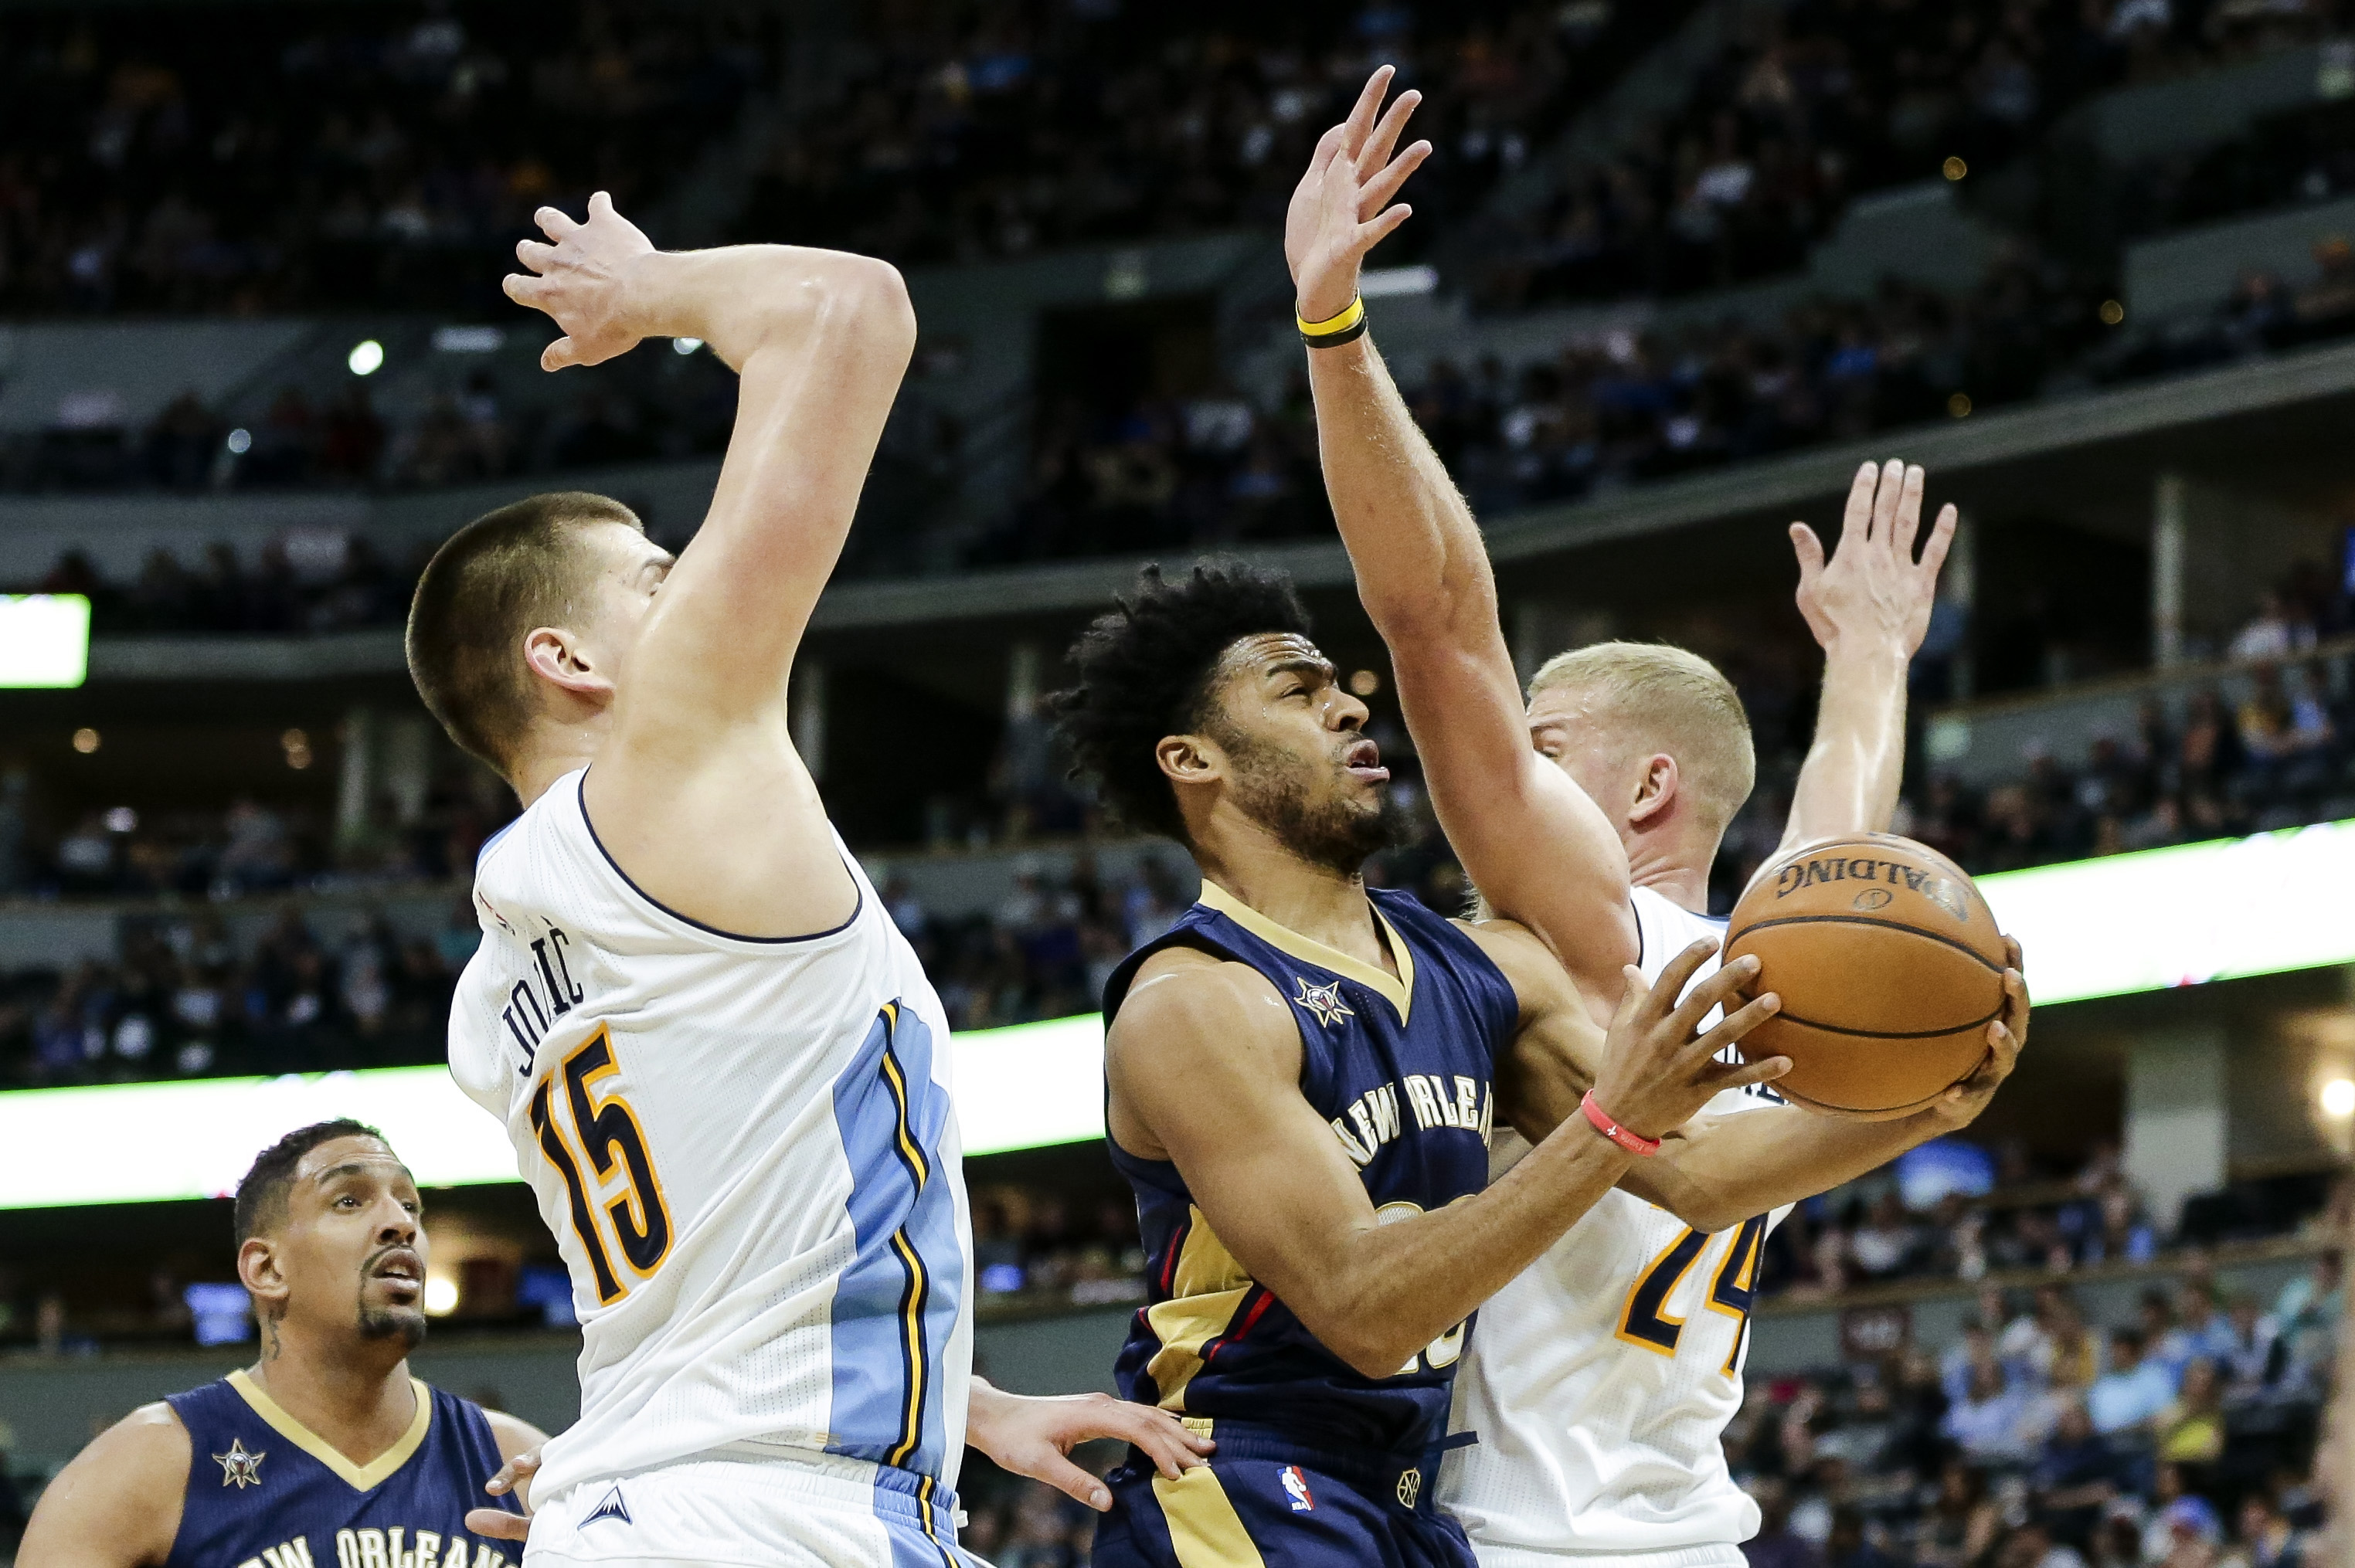 9999214-nba-new-orleans-pelicans-at-denver-nuggets